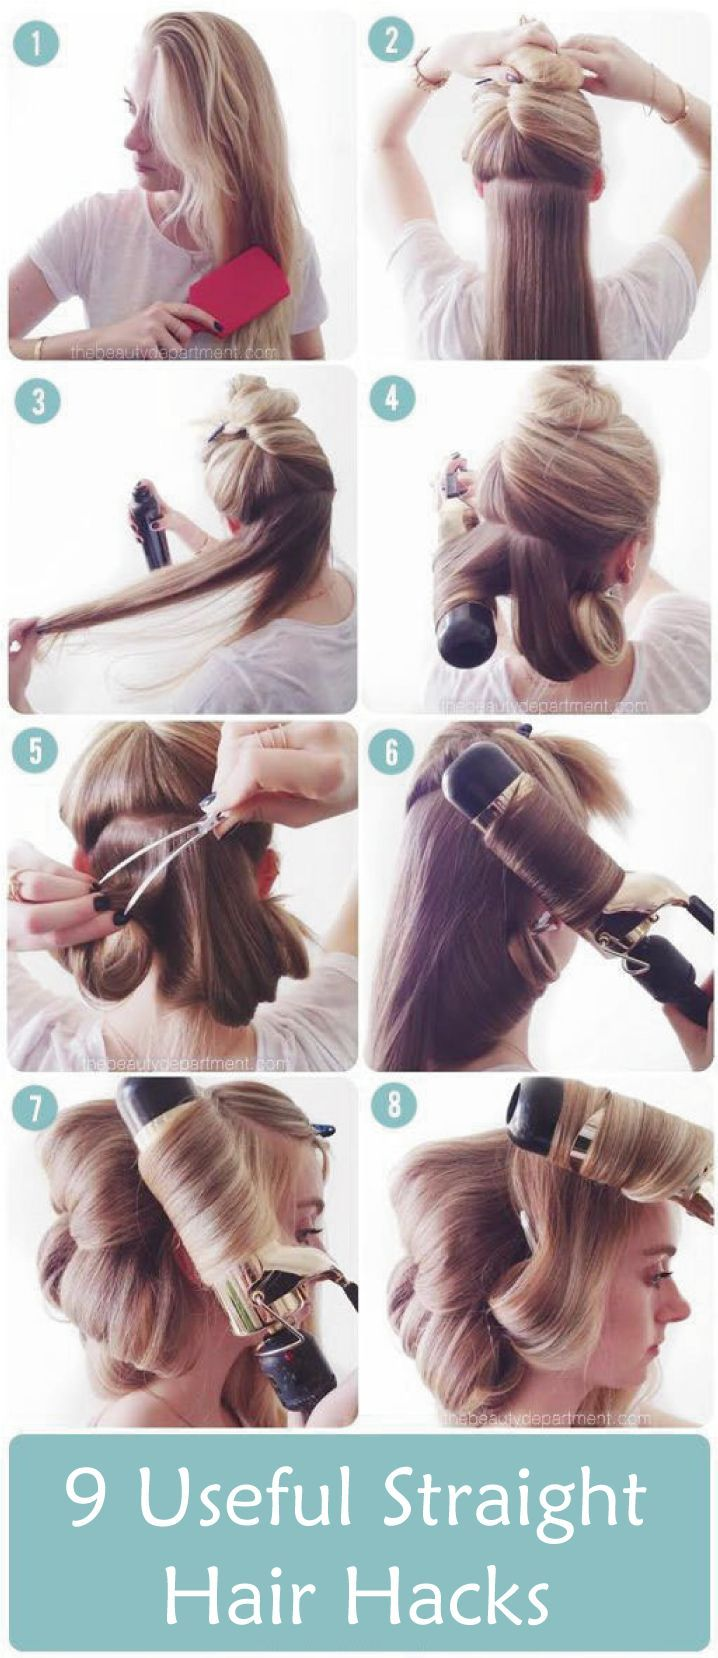 Hair care Tips : Having nice and straight hair? Need tips and tricks here we come with a  9 usef